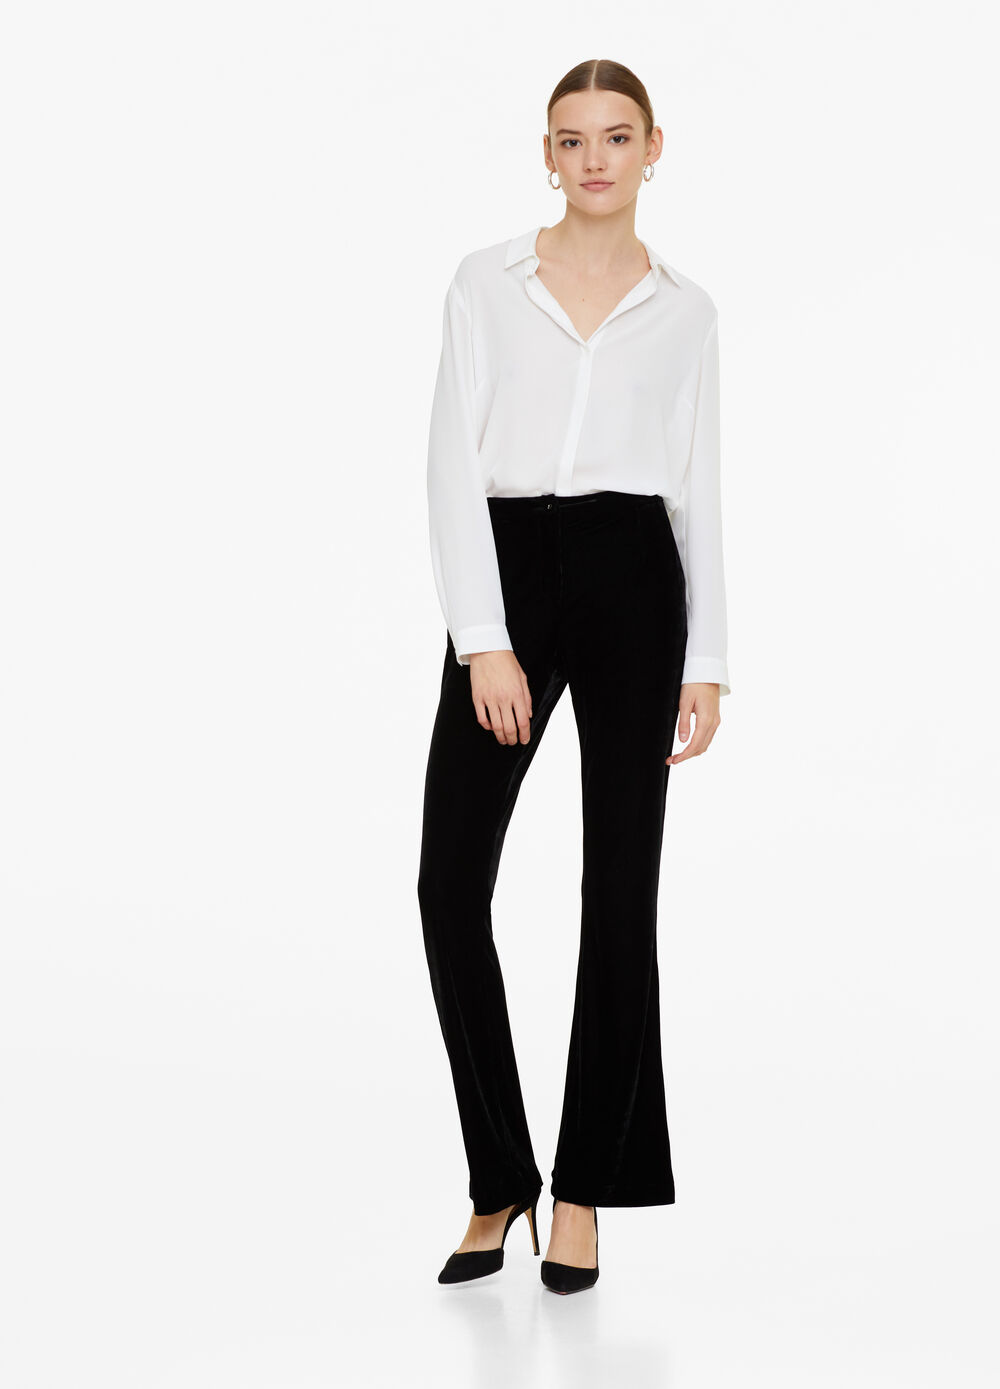 Solid colour bell-bottom trousers